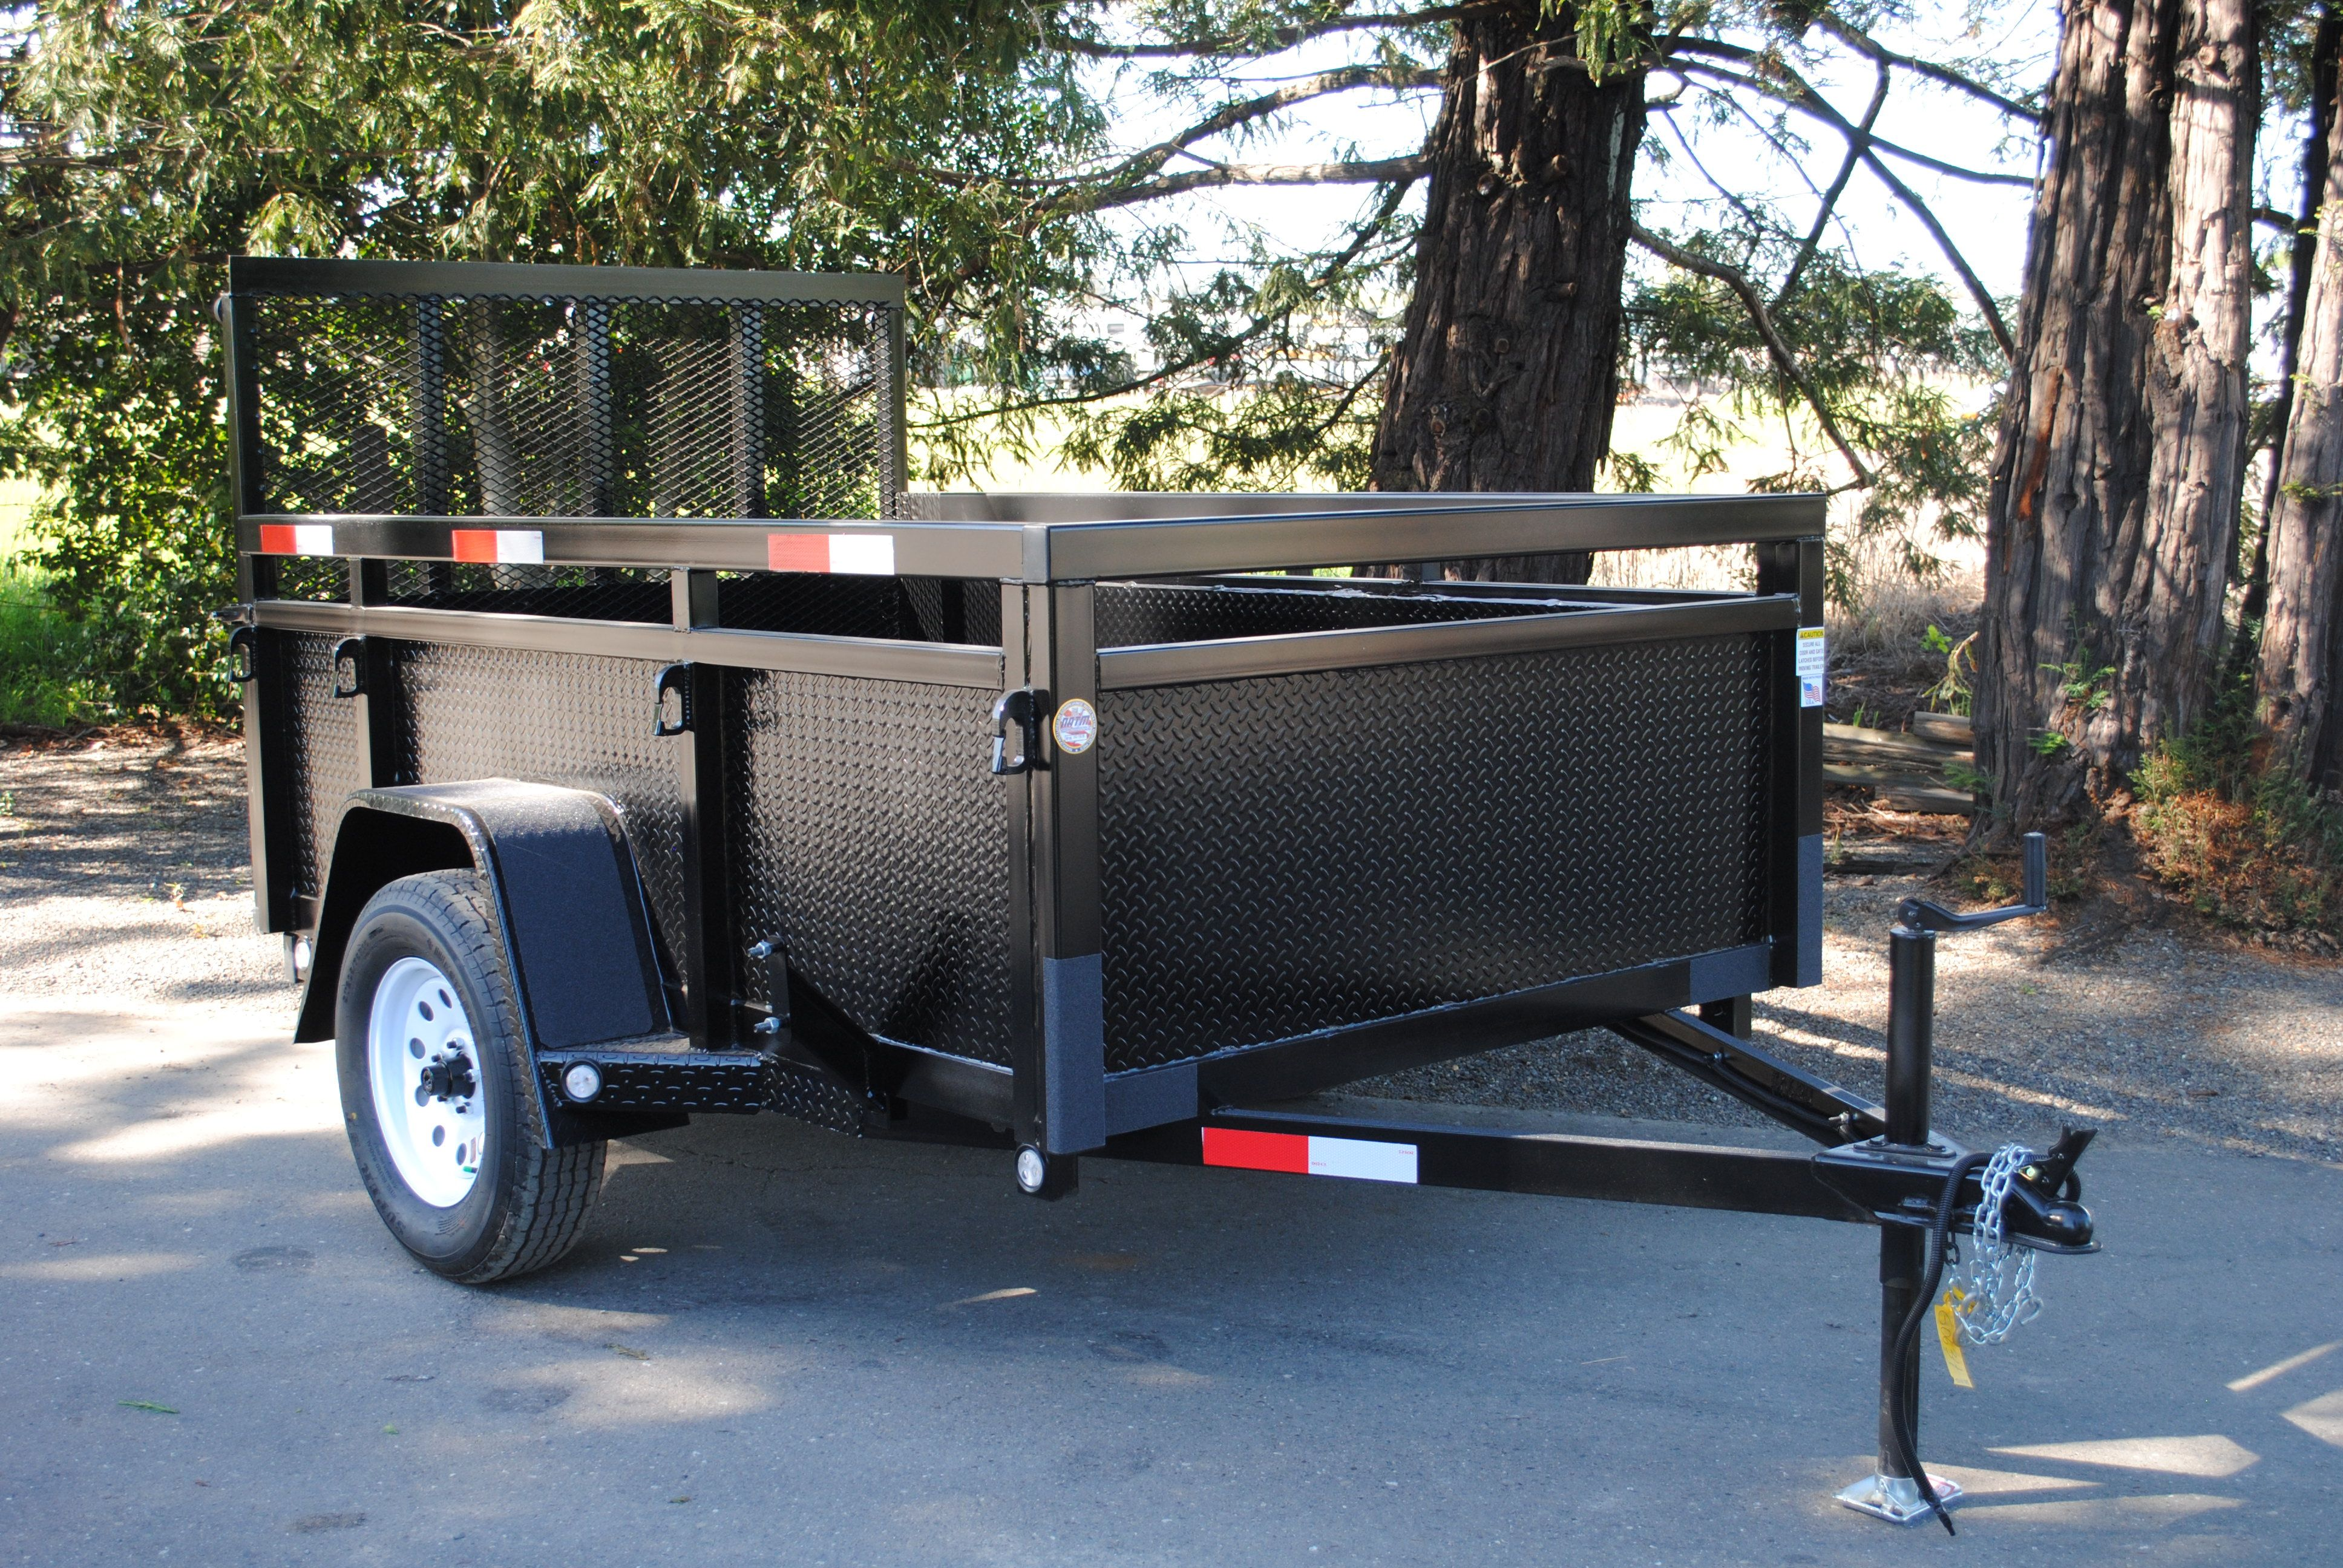 FabForm - Utility Trailers North Bay | Truck Tops USA & Campway's